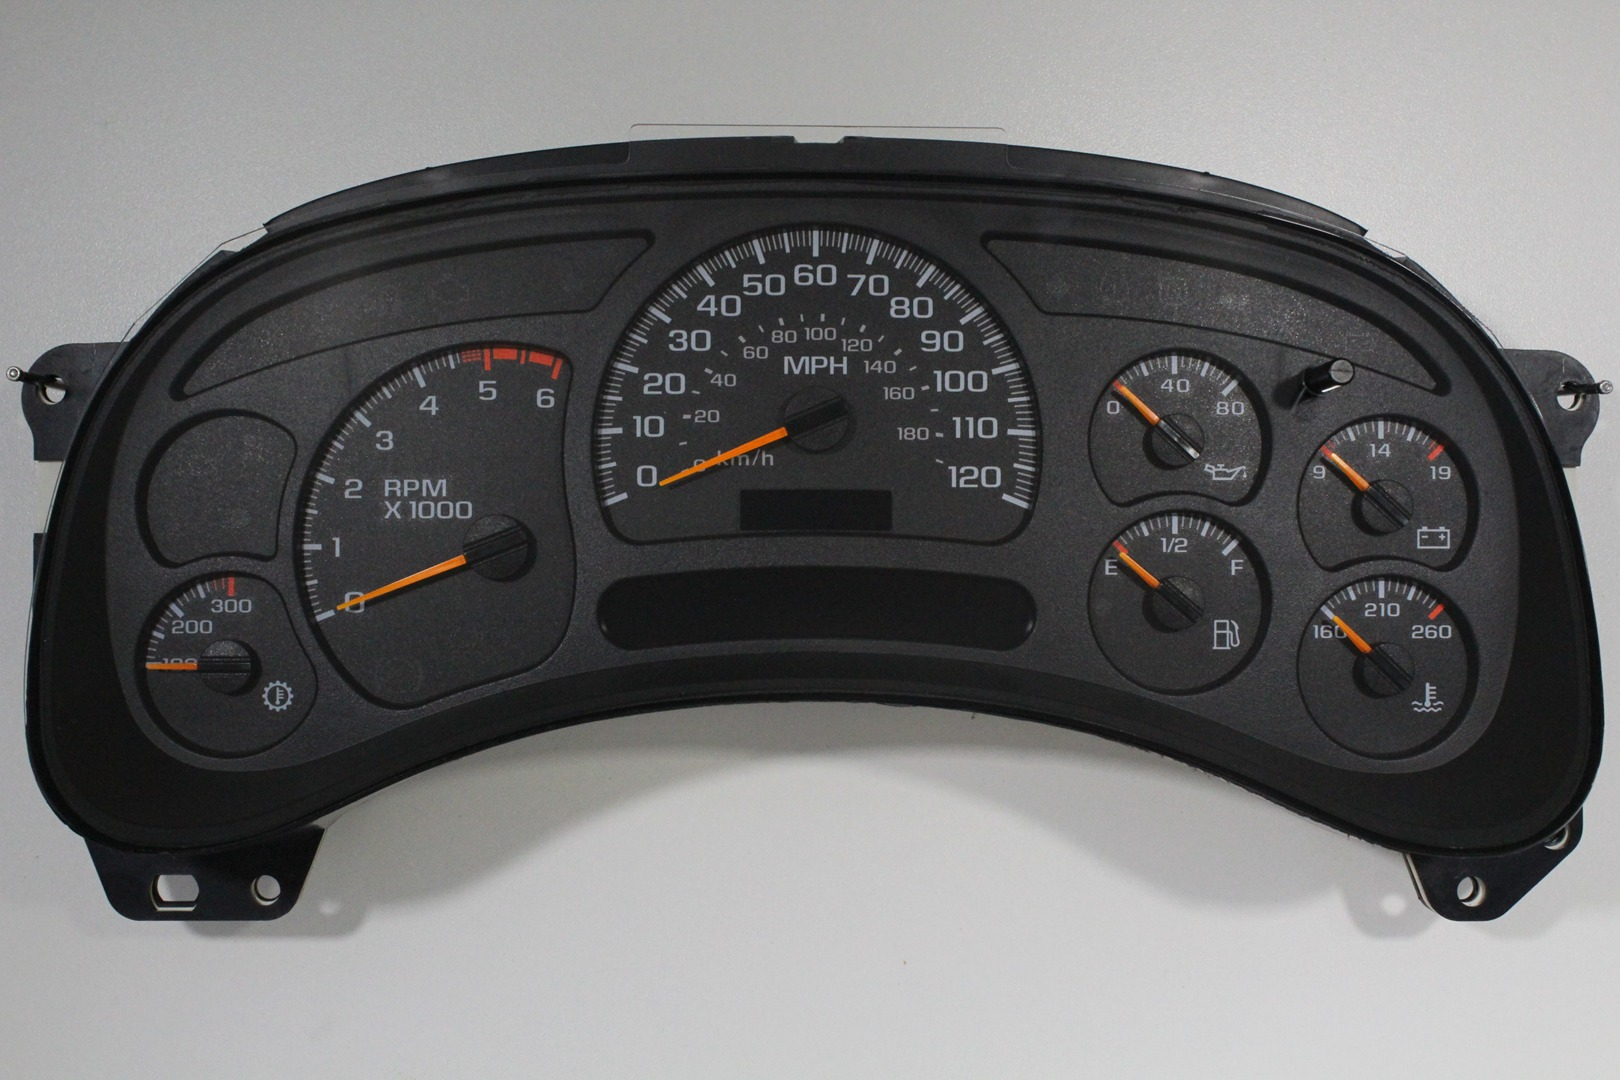 2007 chevy tahoe instrument cluster problems